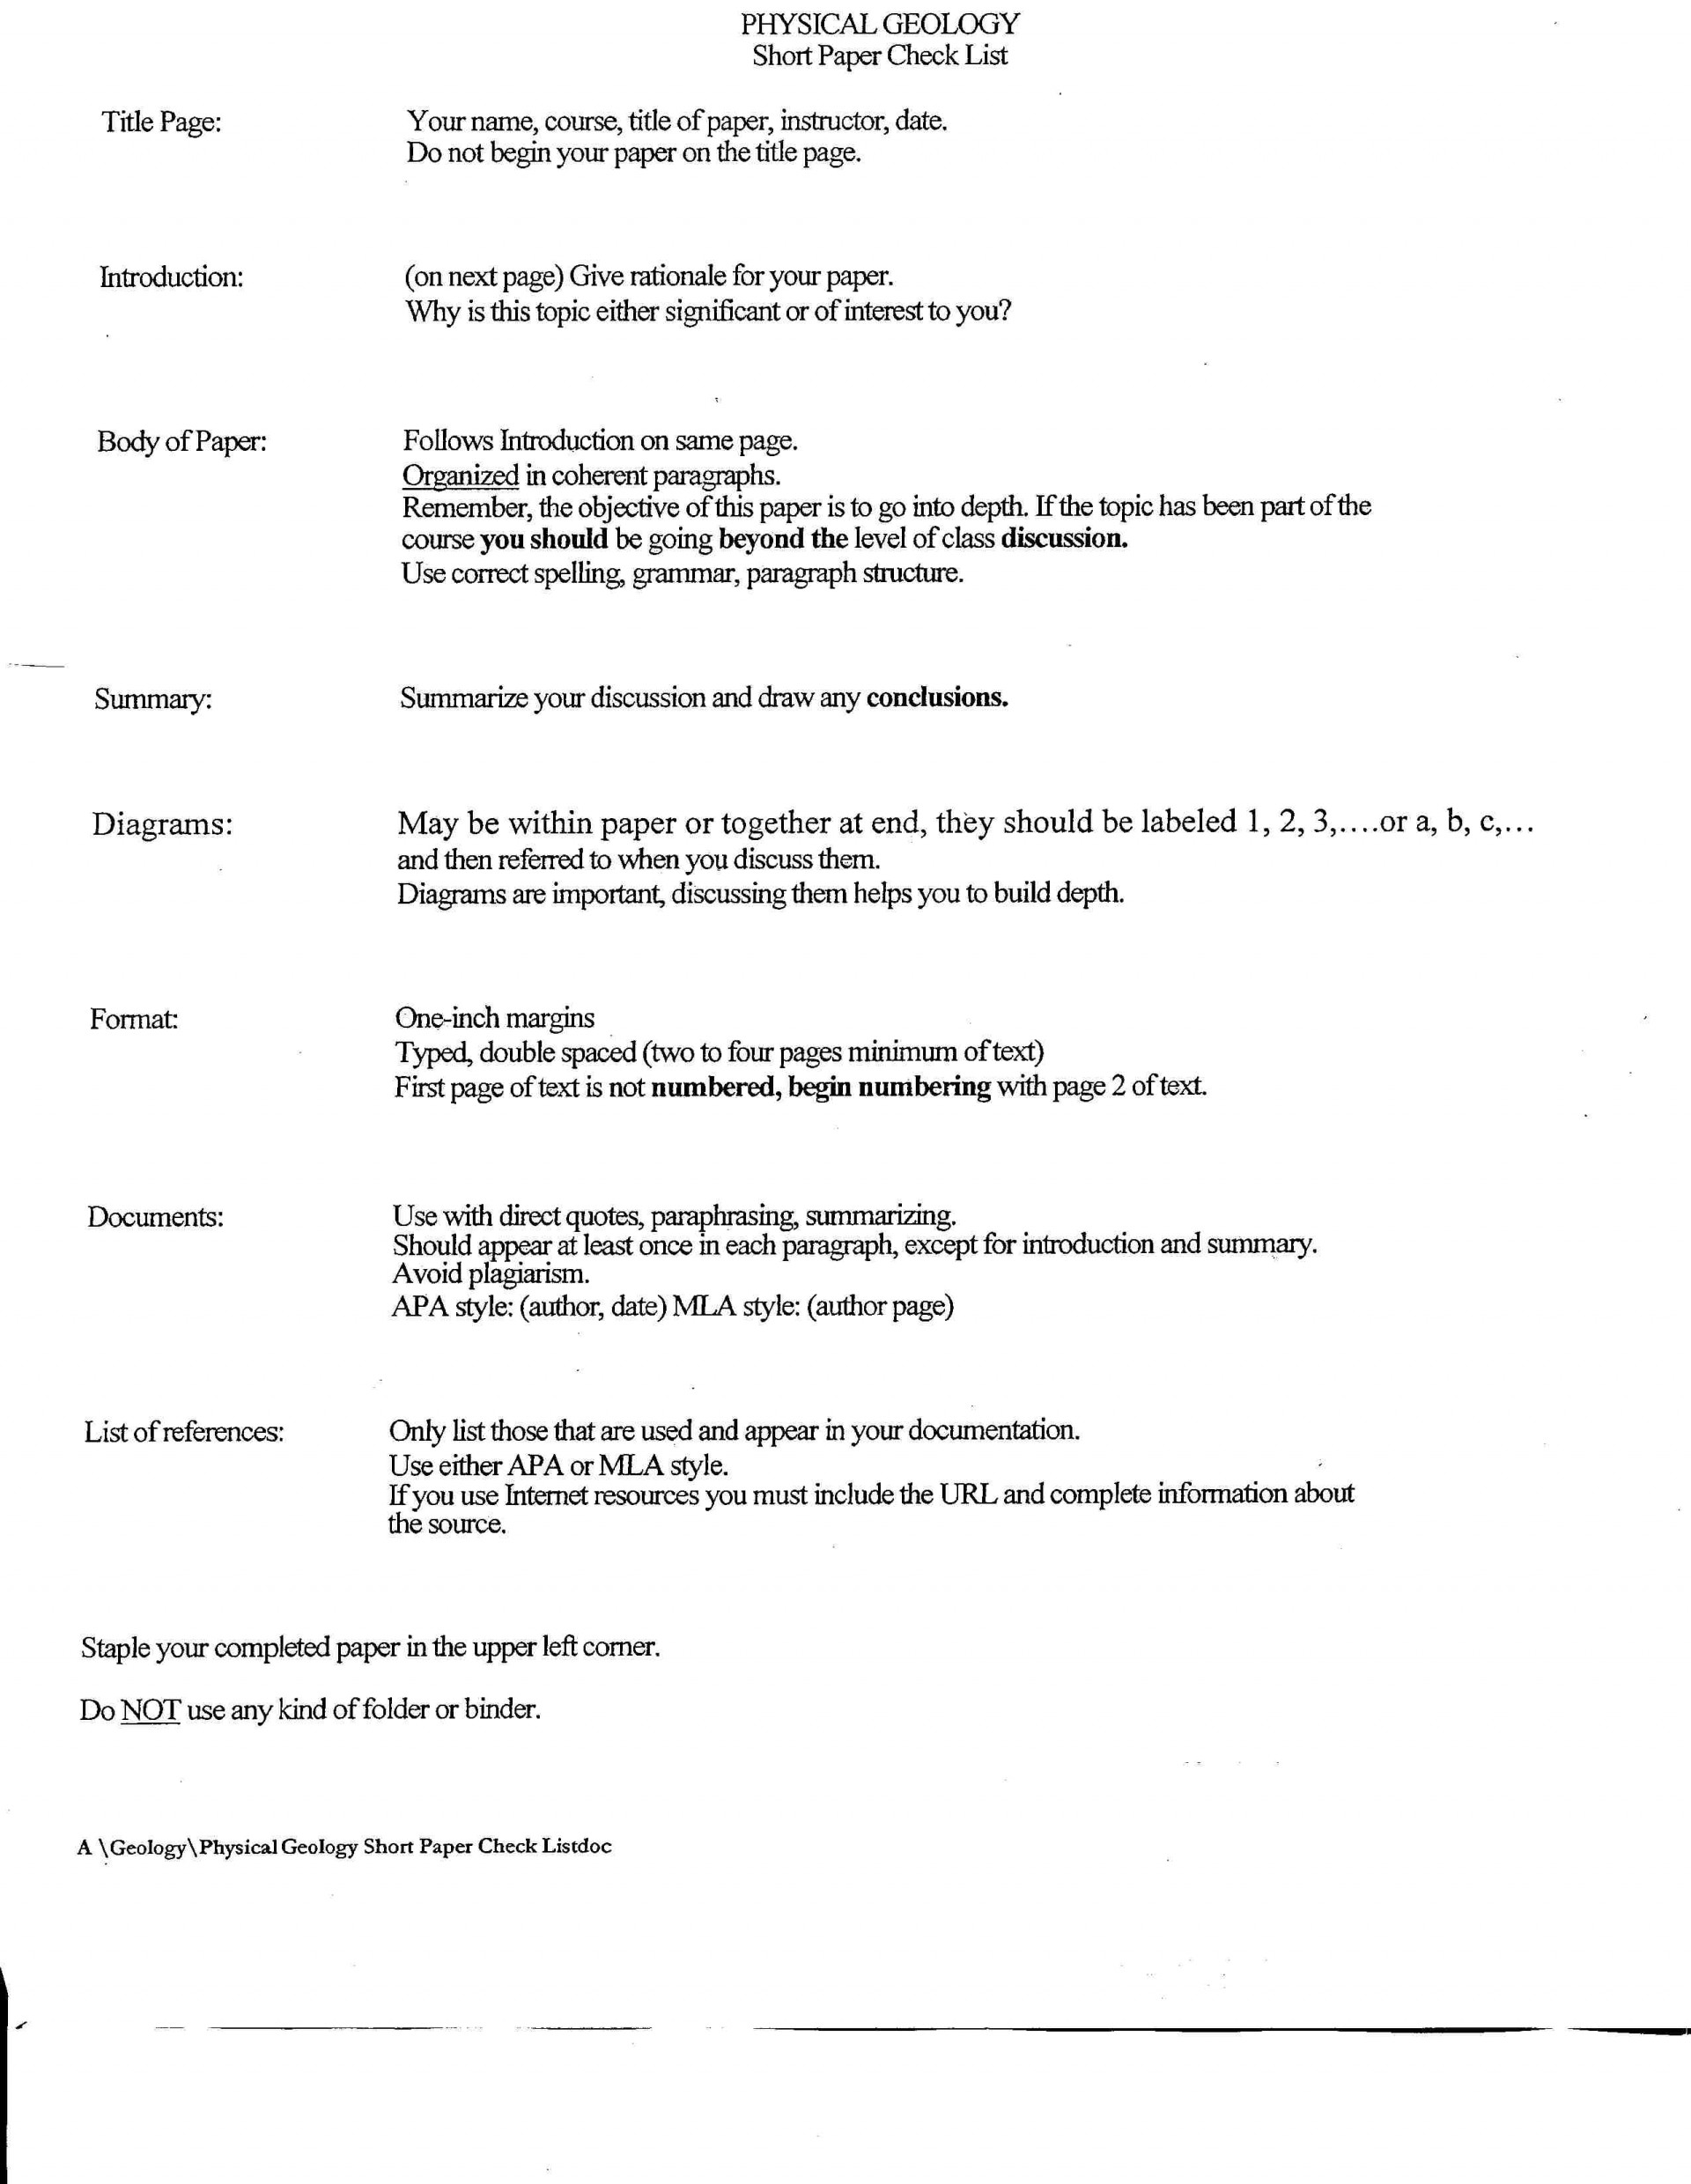 018 Topics In Research Paper Short Checklist Magnificent About Education English Psychology 1920